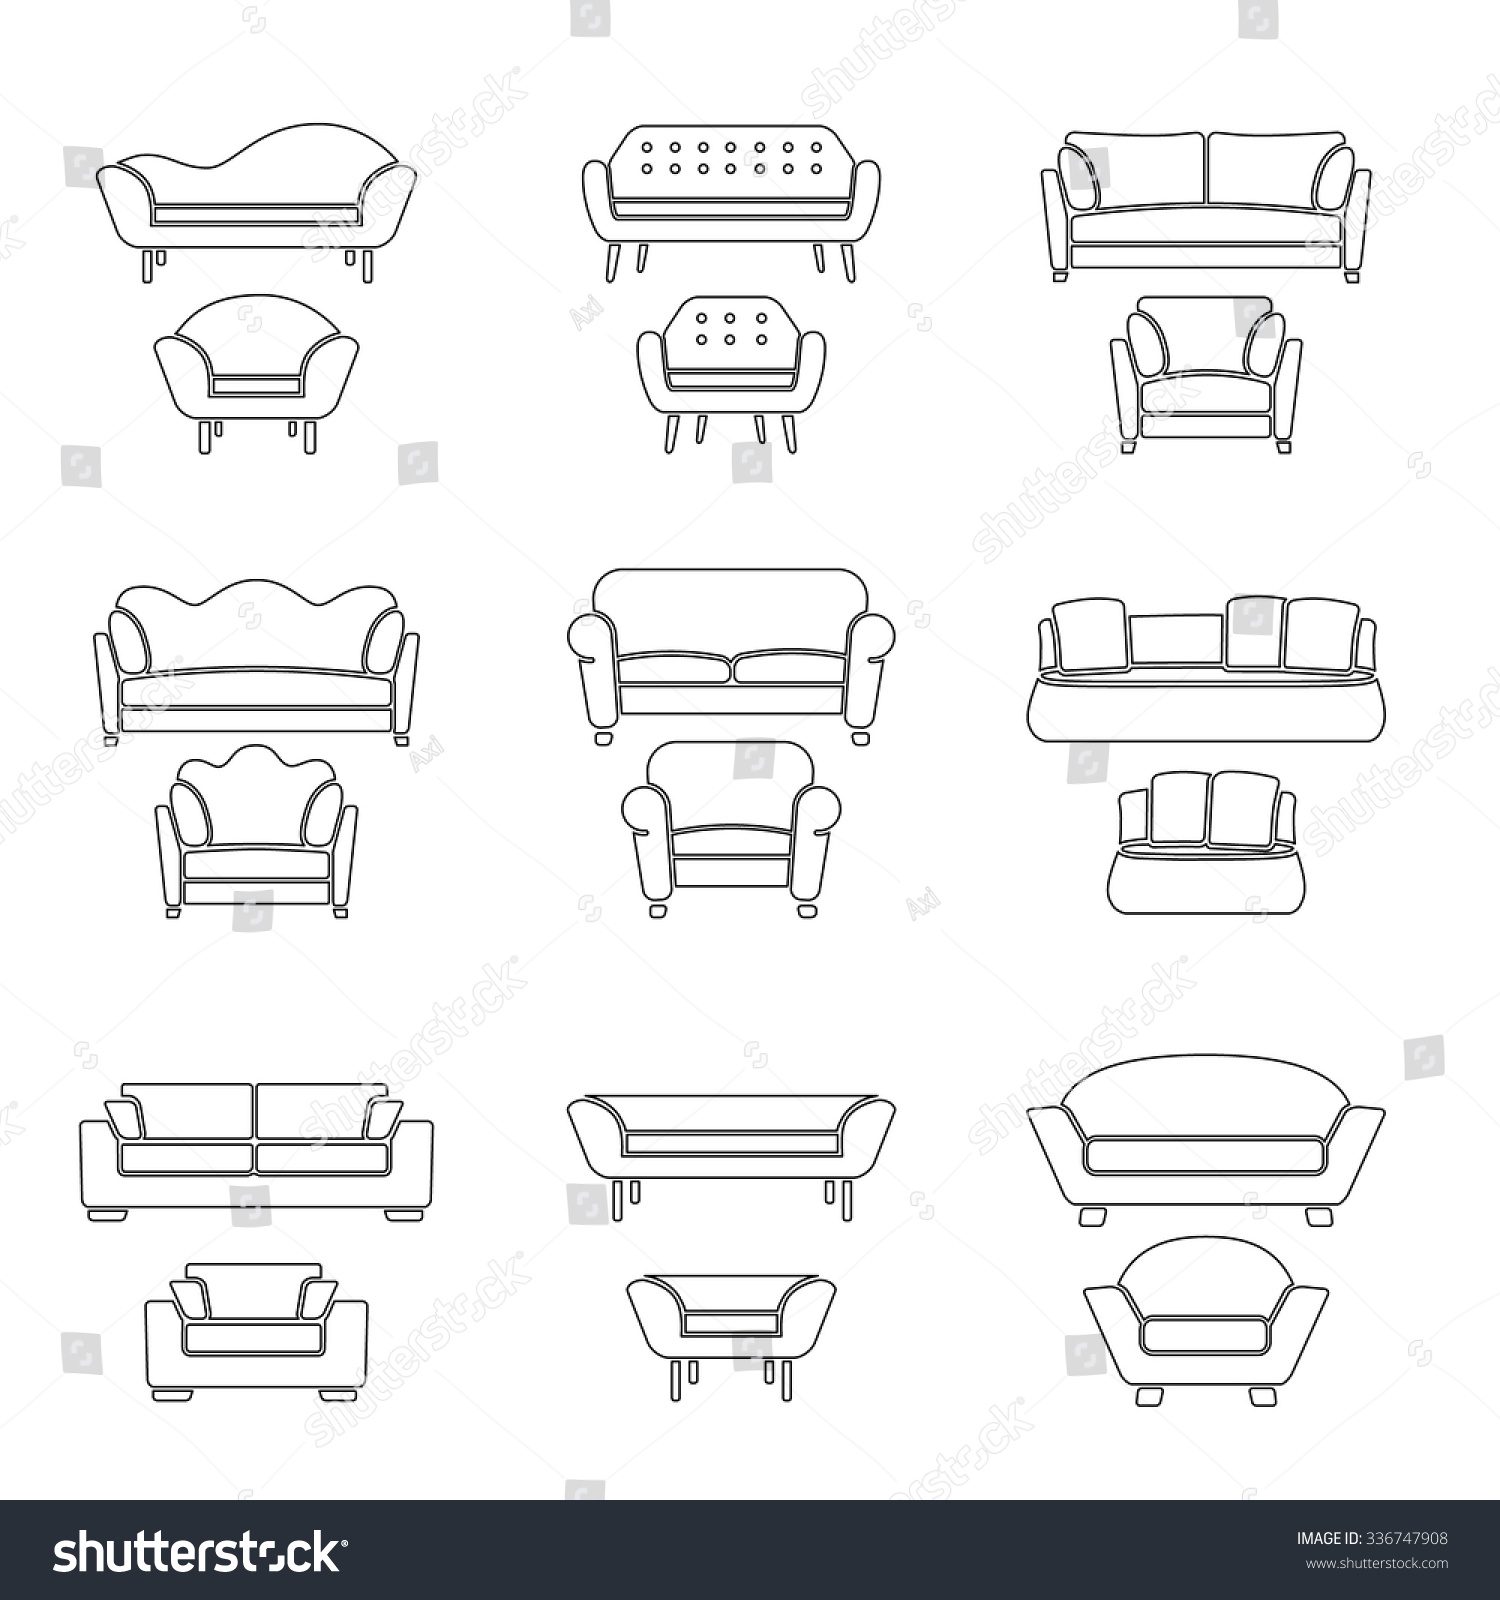 Vector sofa and armchair outline icons isolated. Interior elements collection. Furniture shapes.